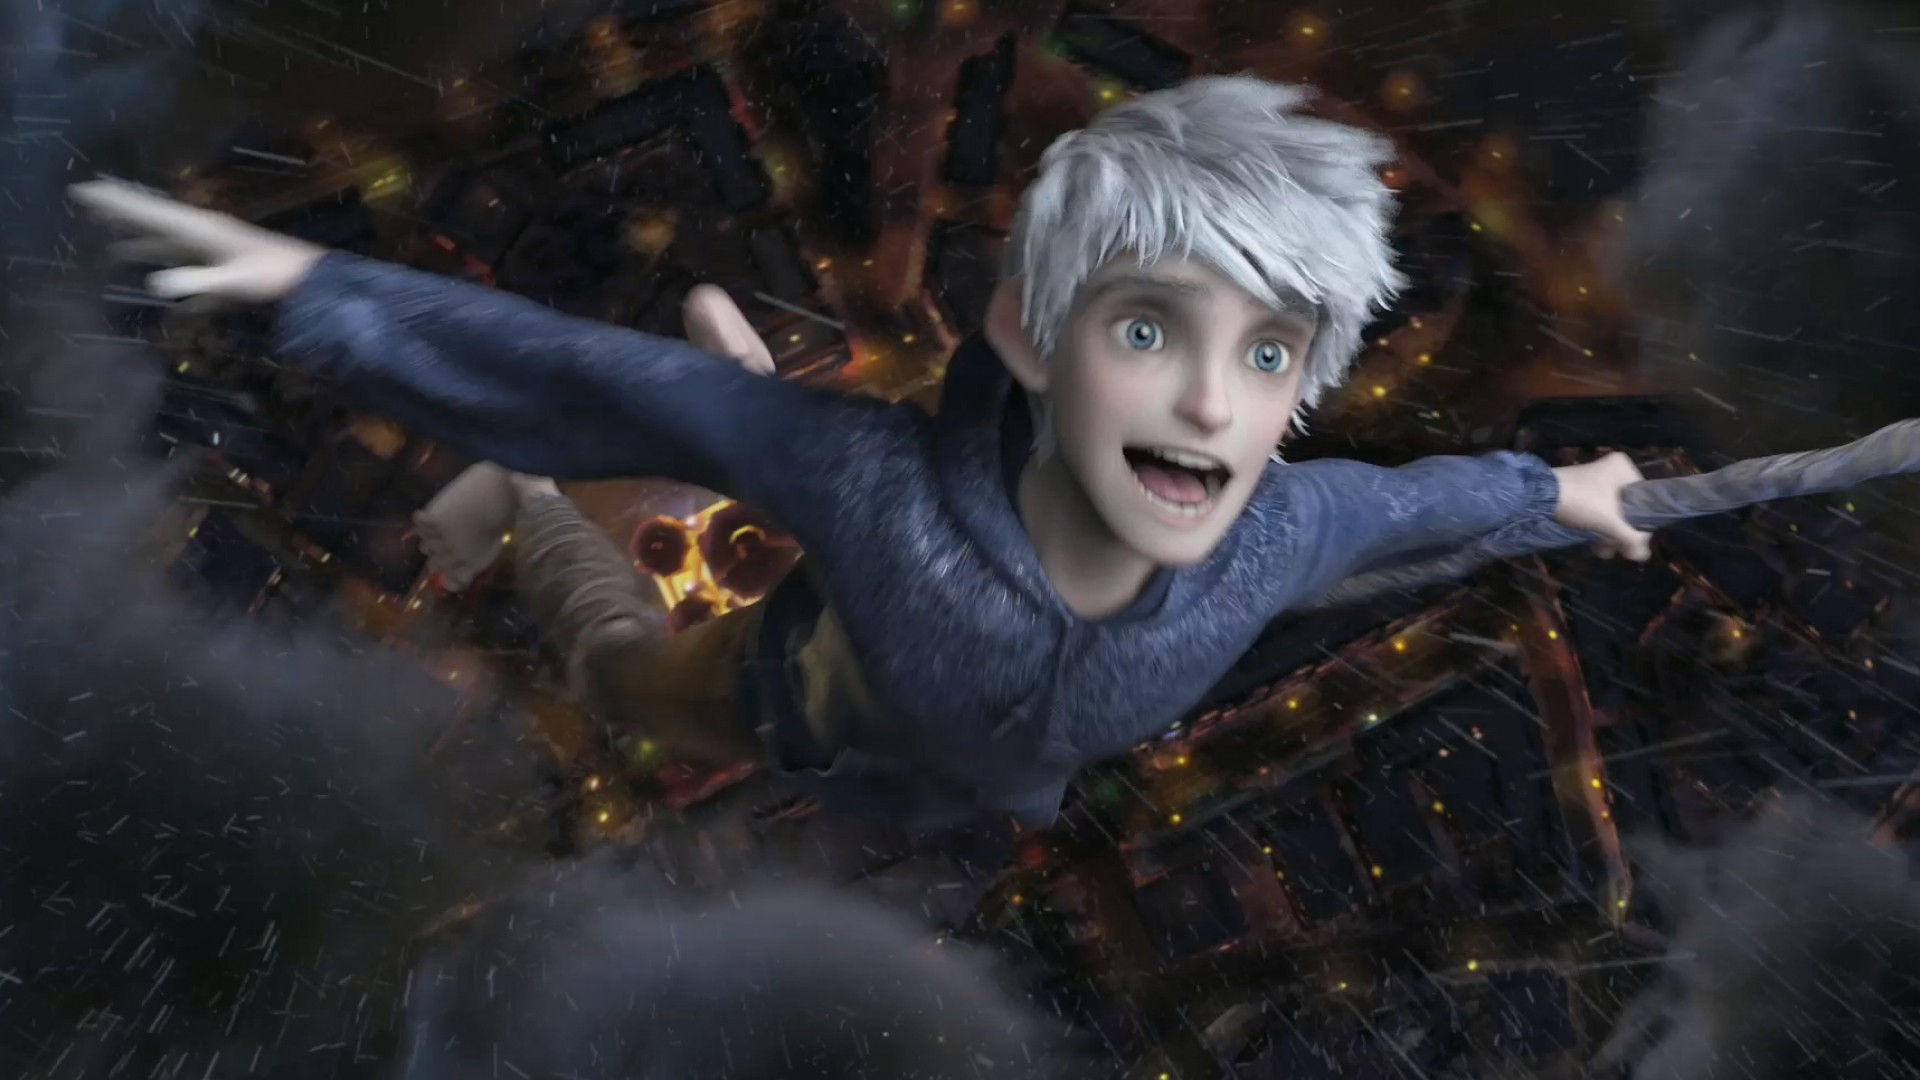 Rise of the guardians images jack frost hd fond dcran and rise of the guardians images jack frost hd wallpaper and background photos thecheapjerseys Gallery